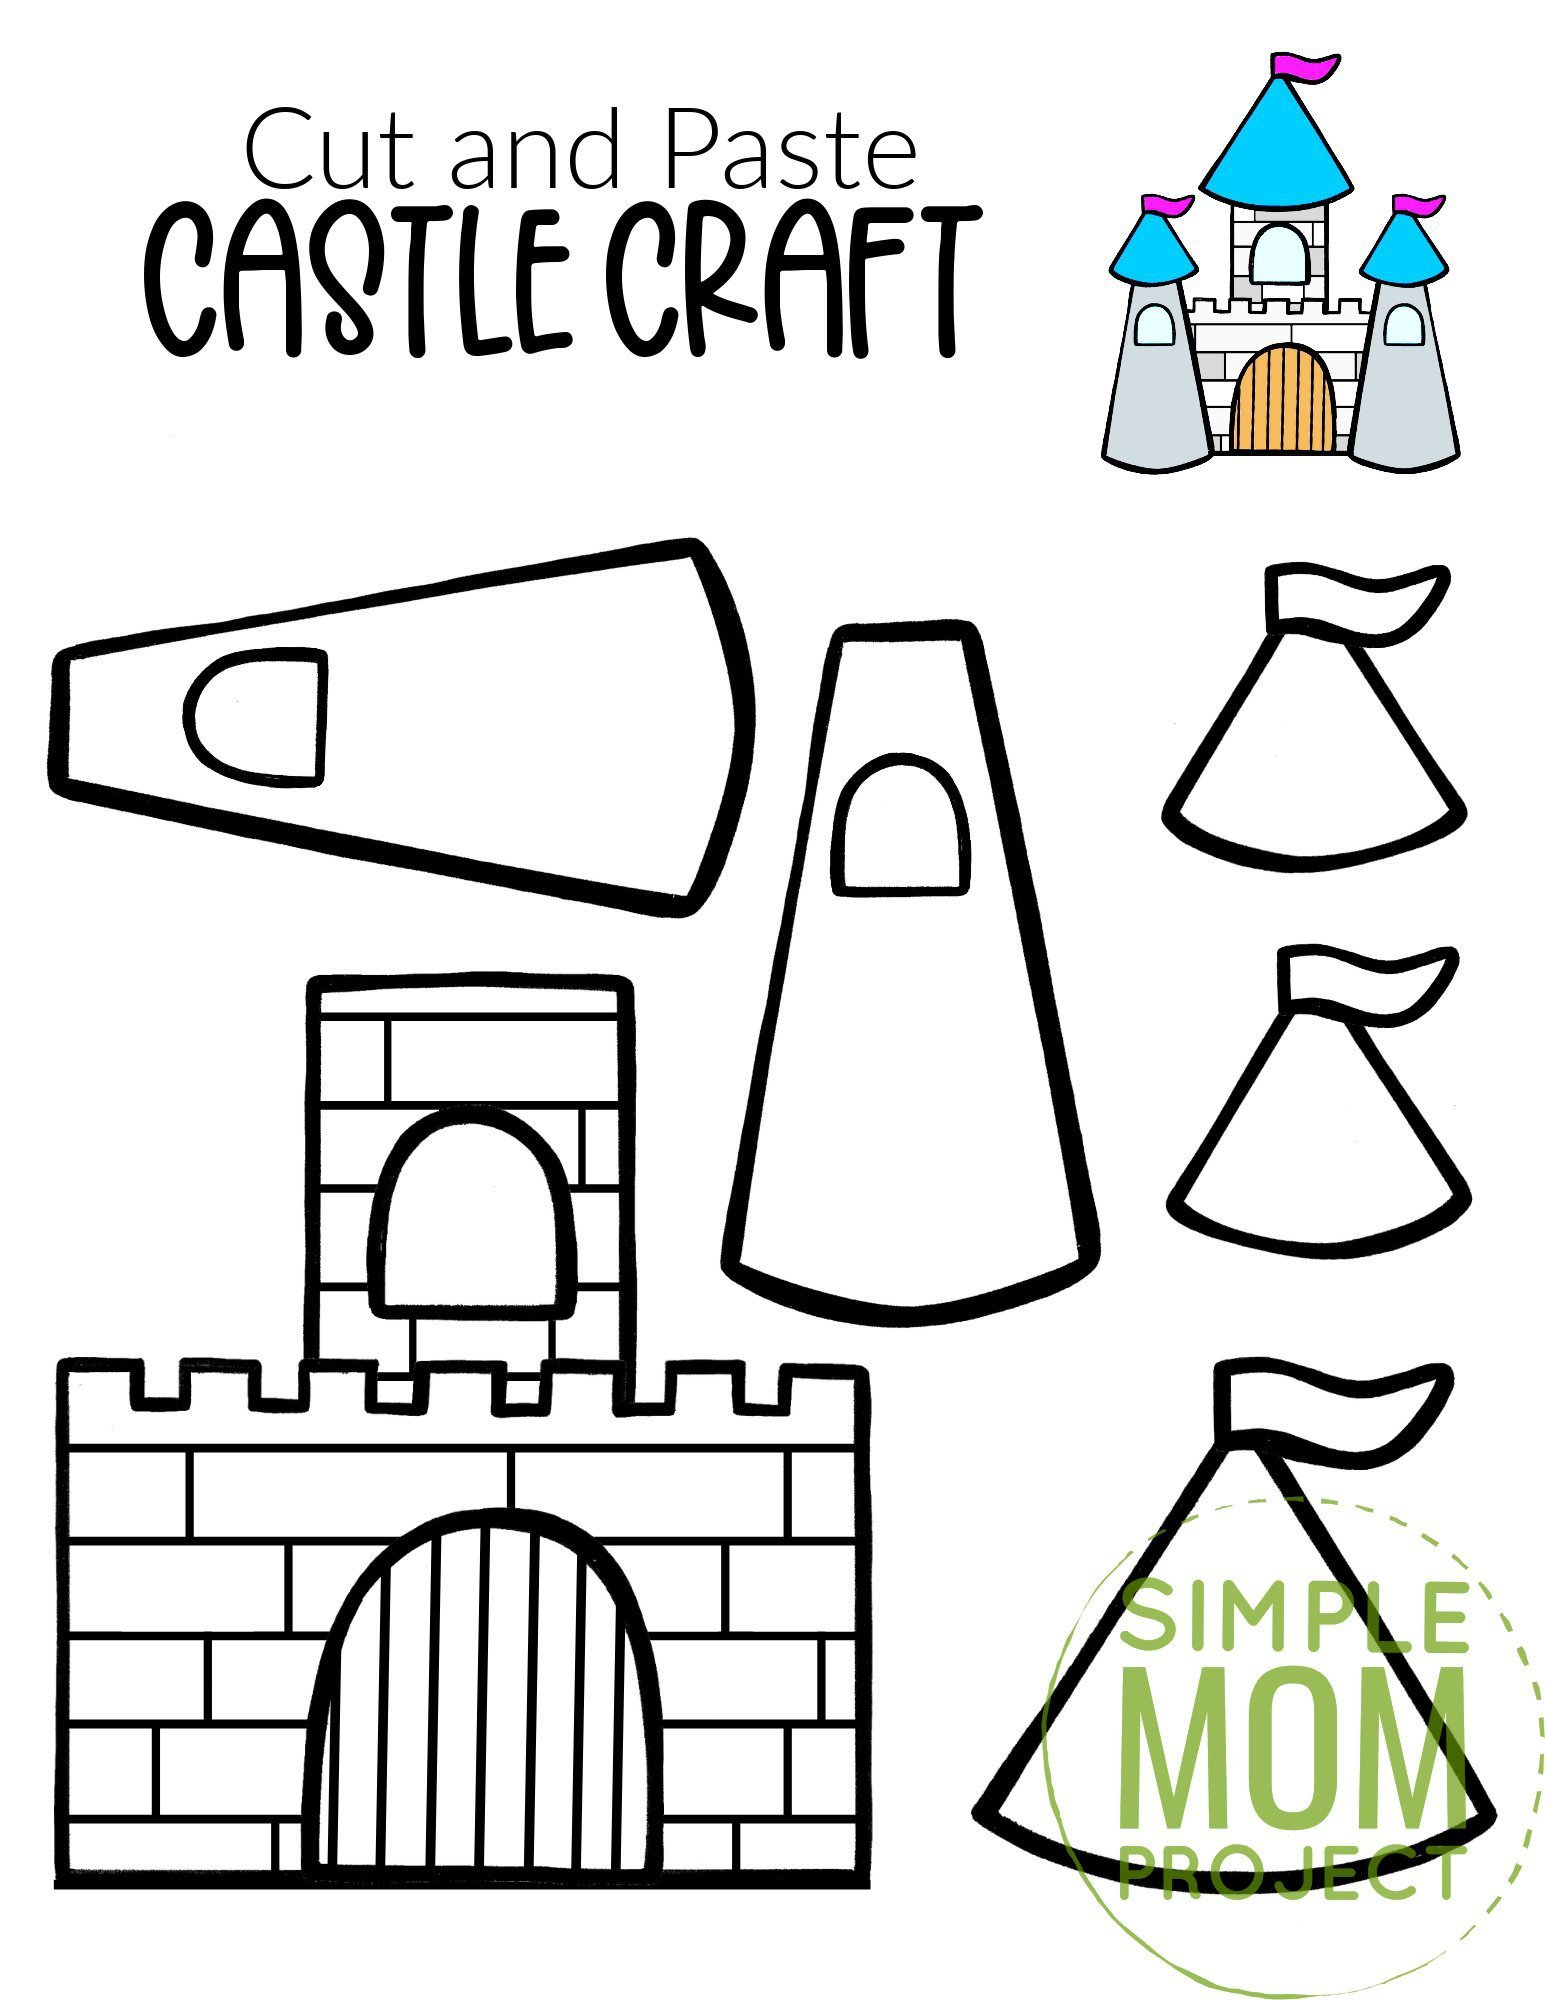 Free Printable Cut and Paste Princess Castle Craft Template Craft for kids, preschoolers and toddlers